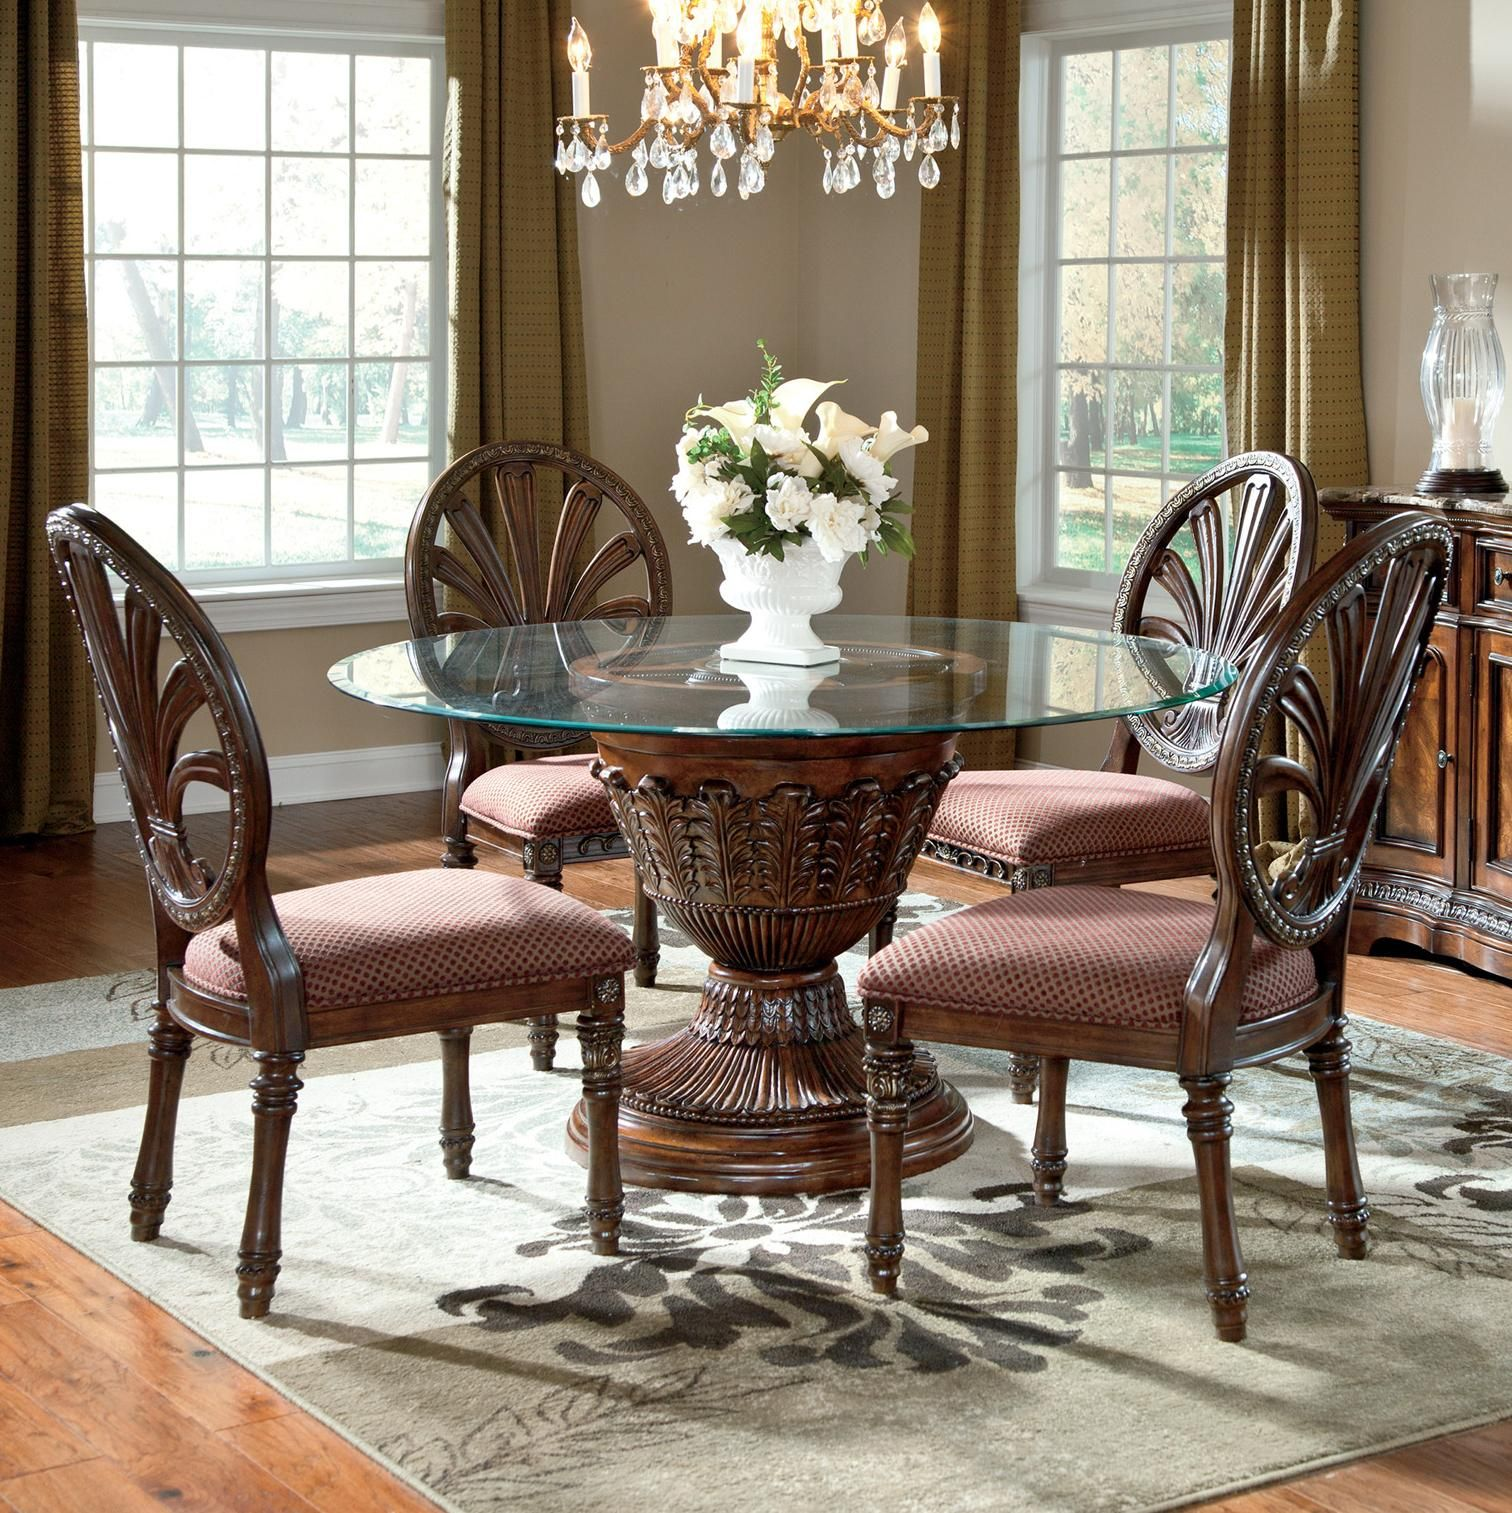 Ledelle 5 Piece Glass Top Table Set By Ashley Millennium Sold At Royal Furniture In Memphis Round Dining Room Sets Round Dining Table Sets Round Dining Room